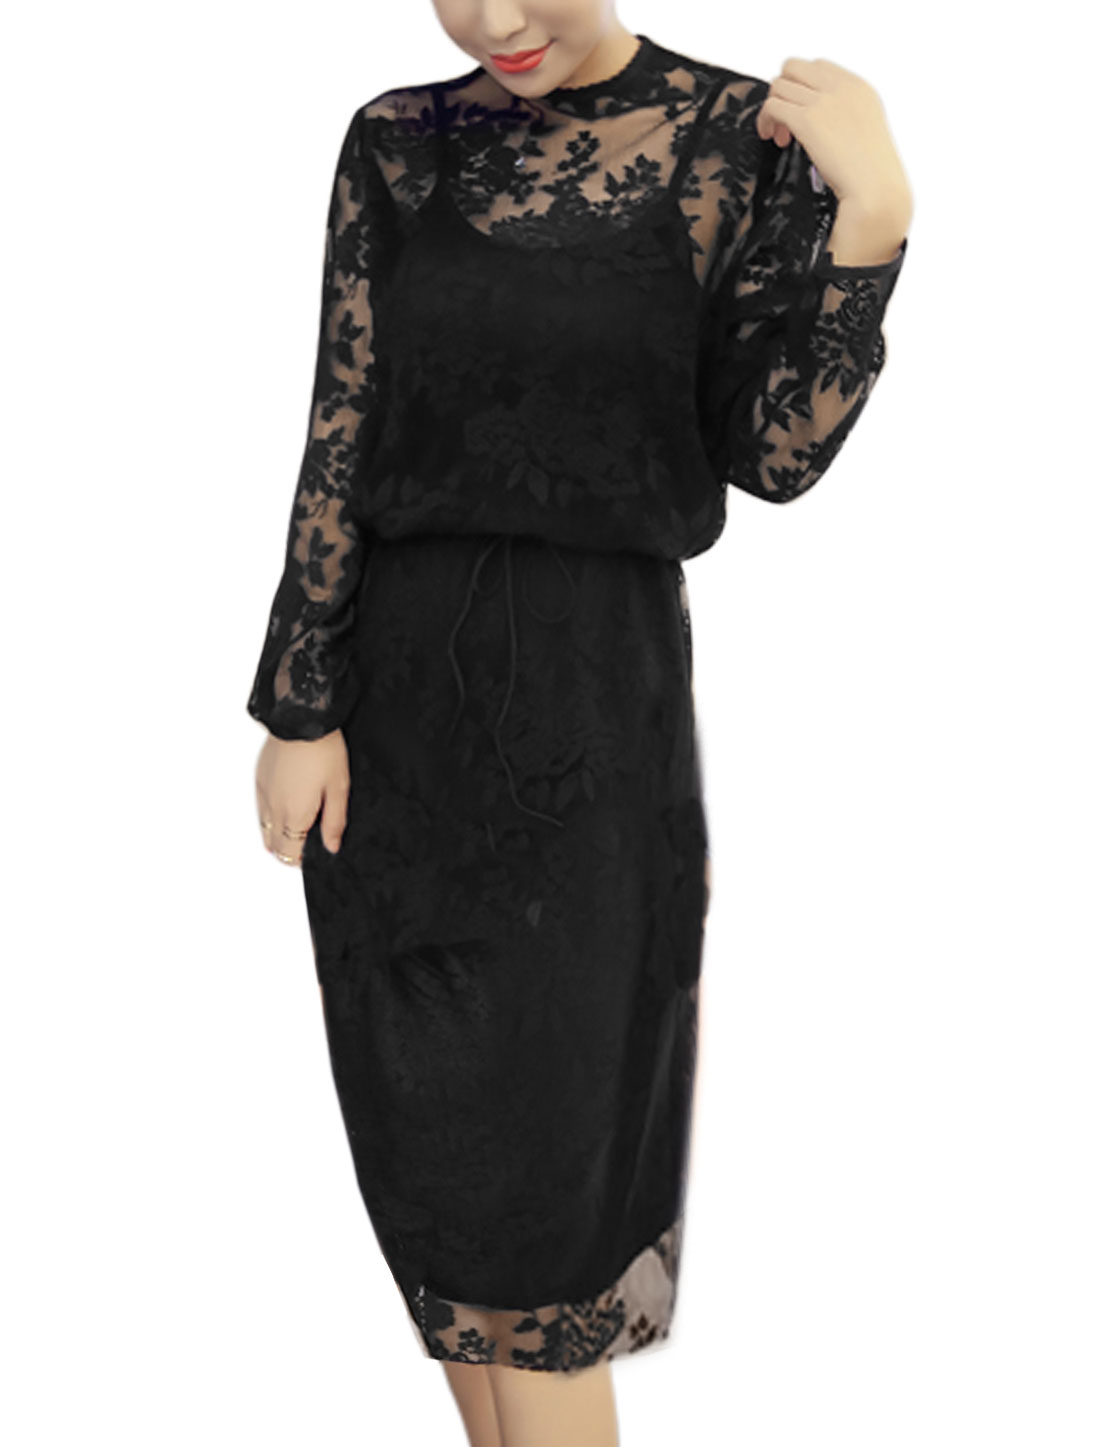 Women Elastic Waist Floral Design Mesh Midi Dress w Cami Dress Sets Black XS